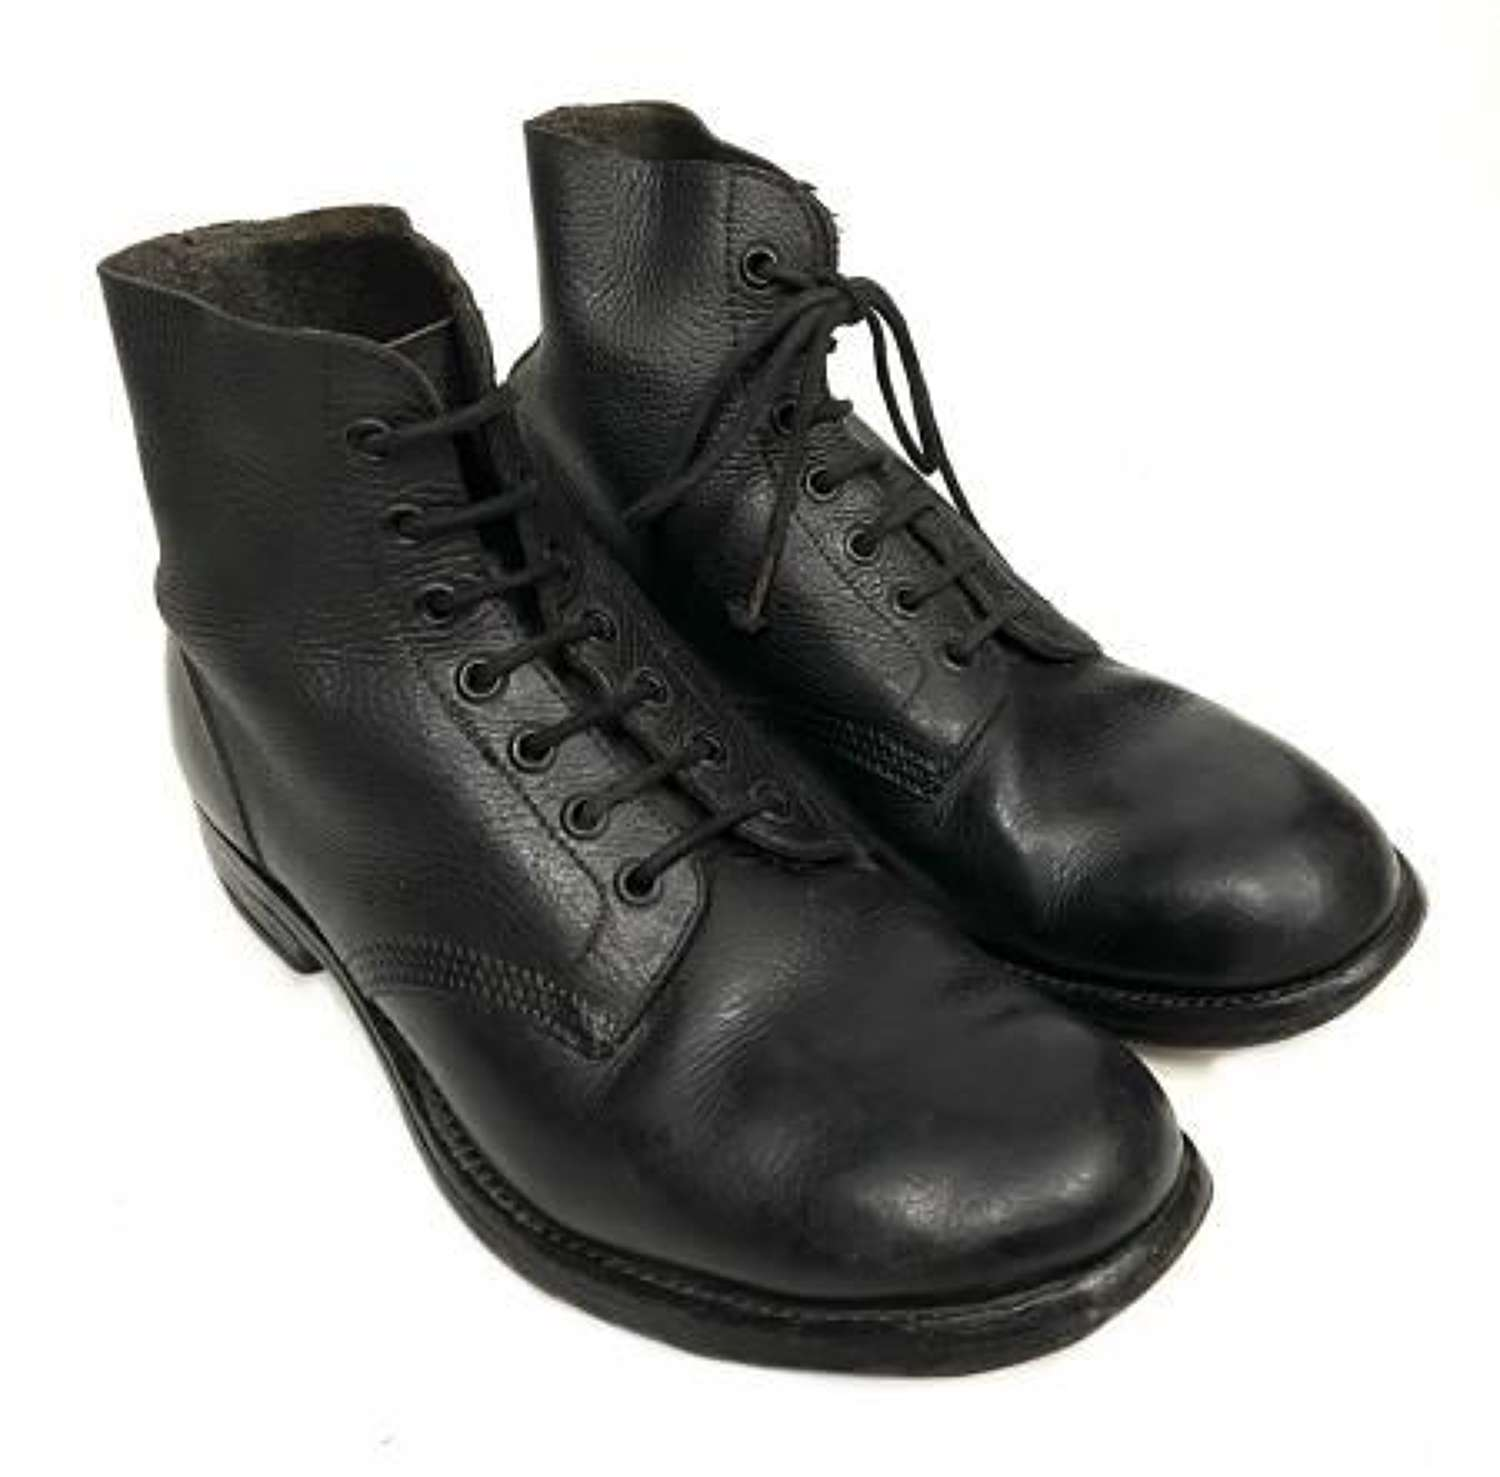 Original 1948 Dated RAF Ordinary Airman's Black Ankle Boots - Size 8